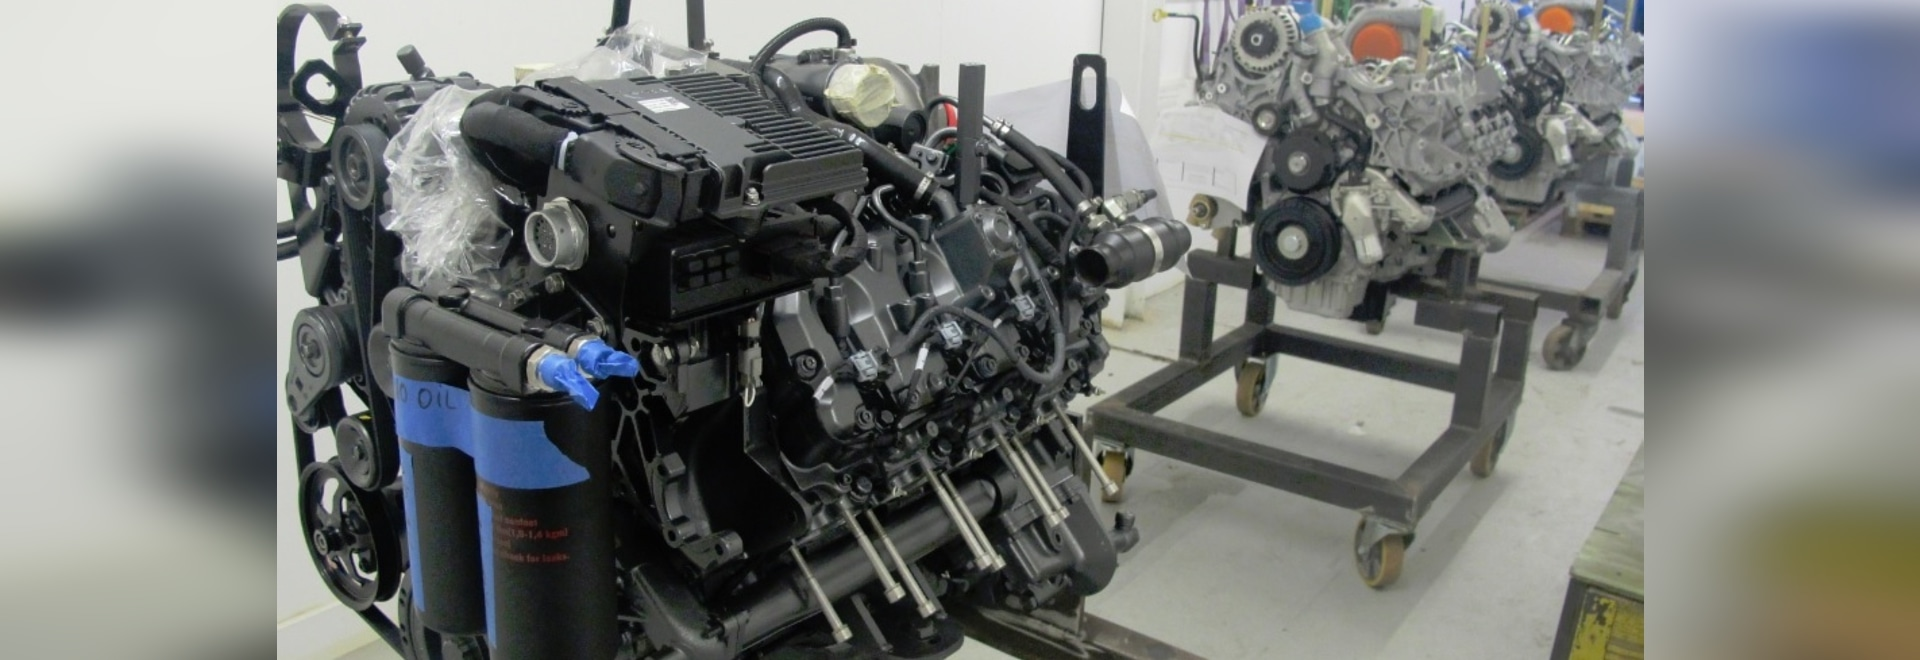 Automotive diesels being marinised at Proteum